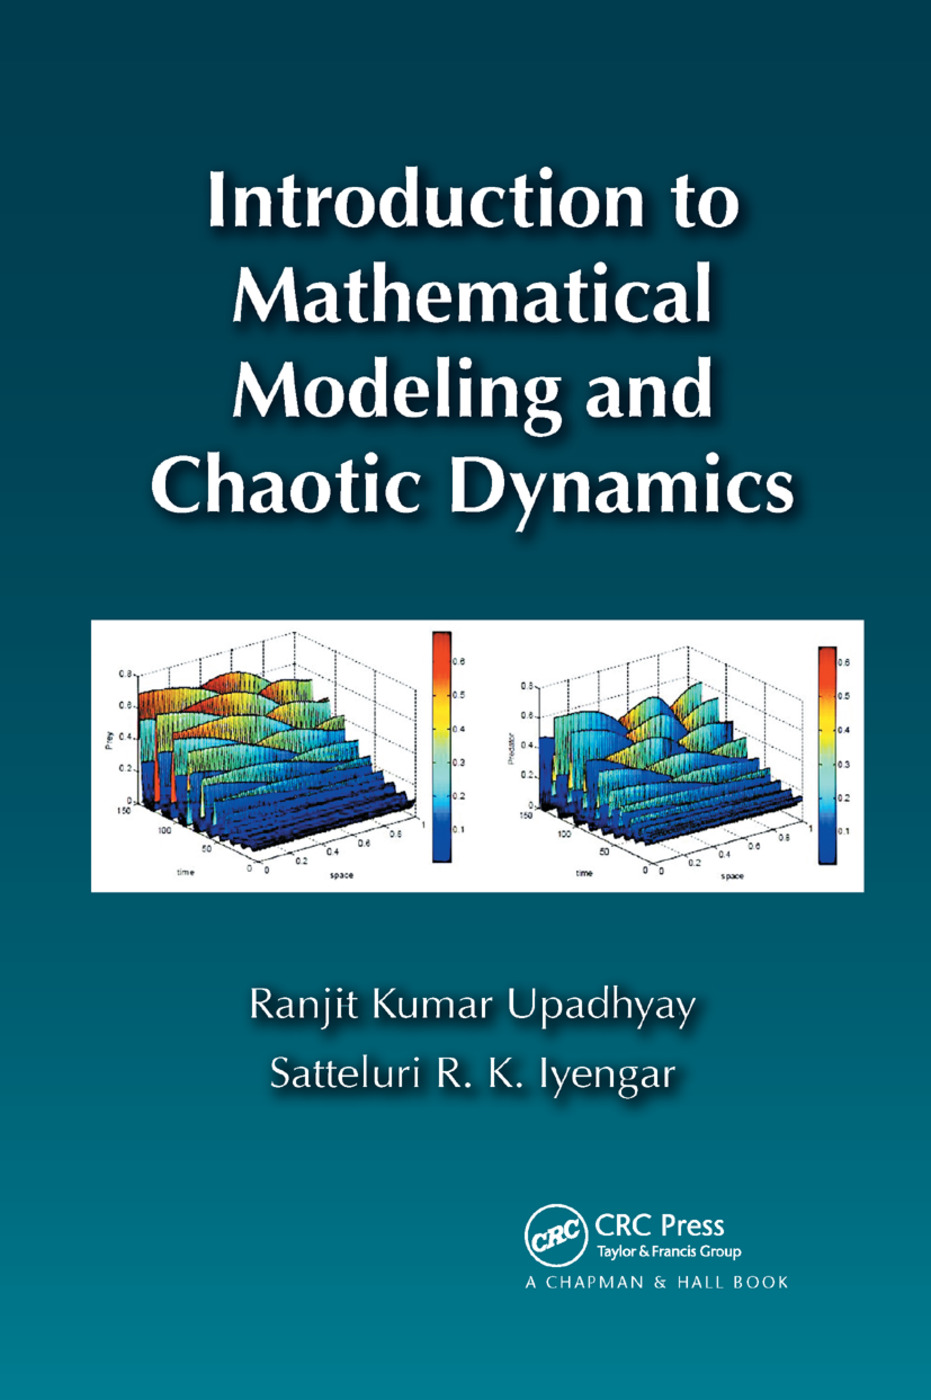 Introduction to Mathematical Modeling and Chaotic Dynamics